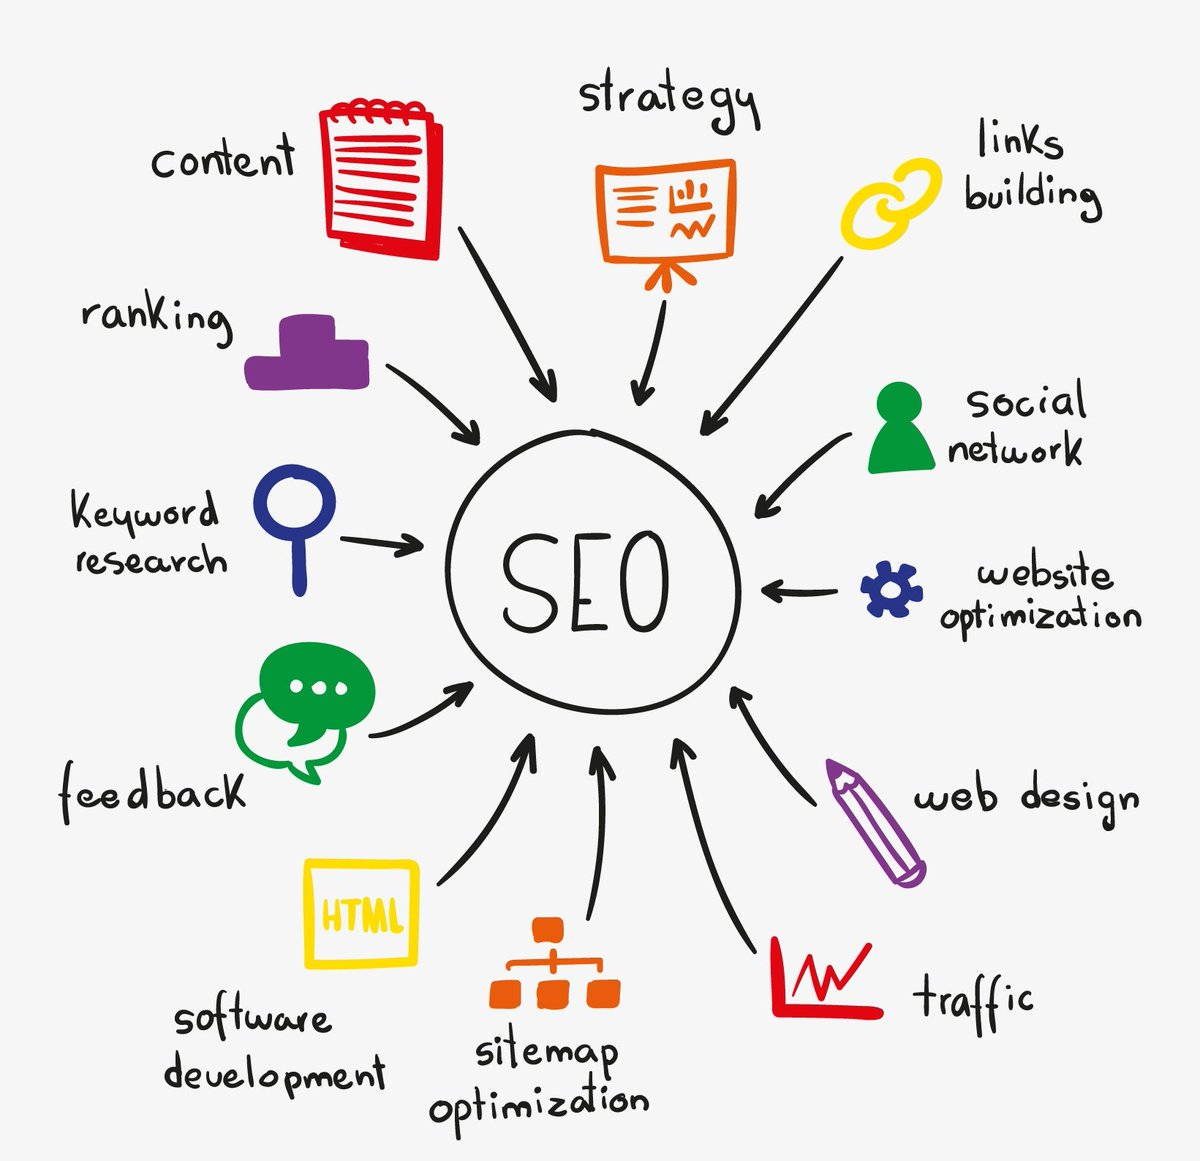 Why #SEO Matters to Your #InboundMarketing Strategy   http:// buff.ly/2drkVvj  &nbsp;         [via  @AccelityMktg] #DigitalMarketing<br>http://pic.twitter.com/ws5fqBiA0P